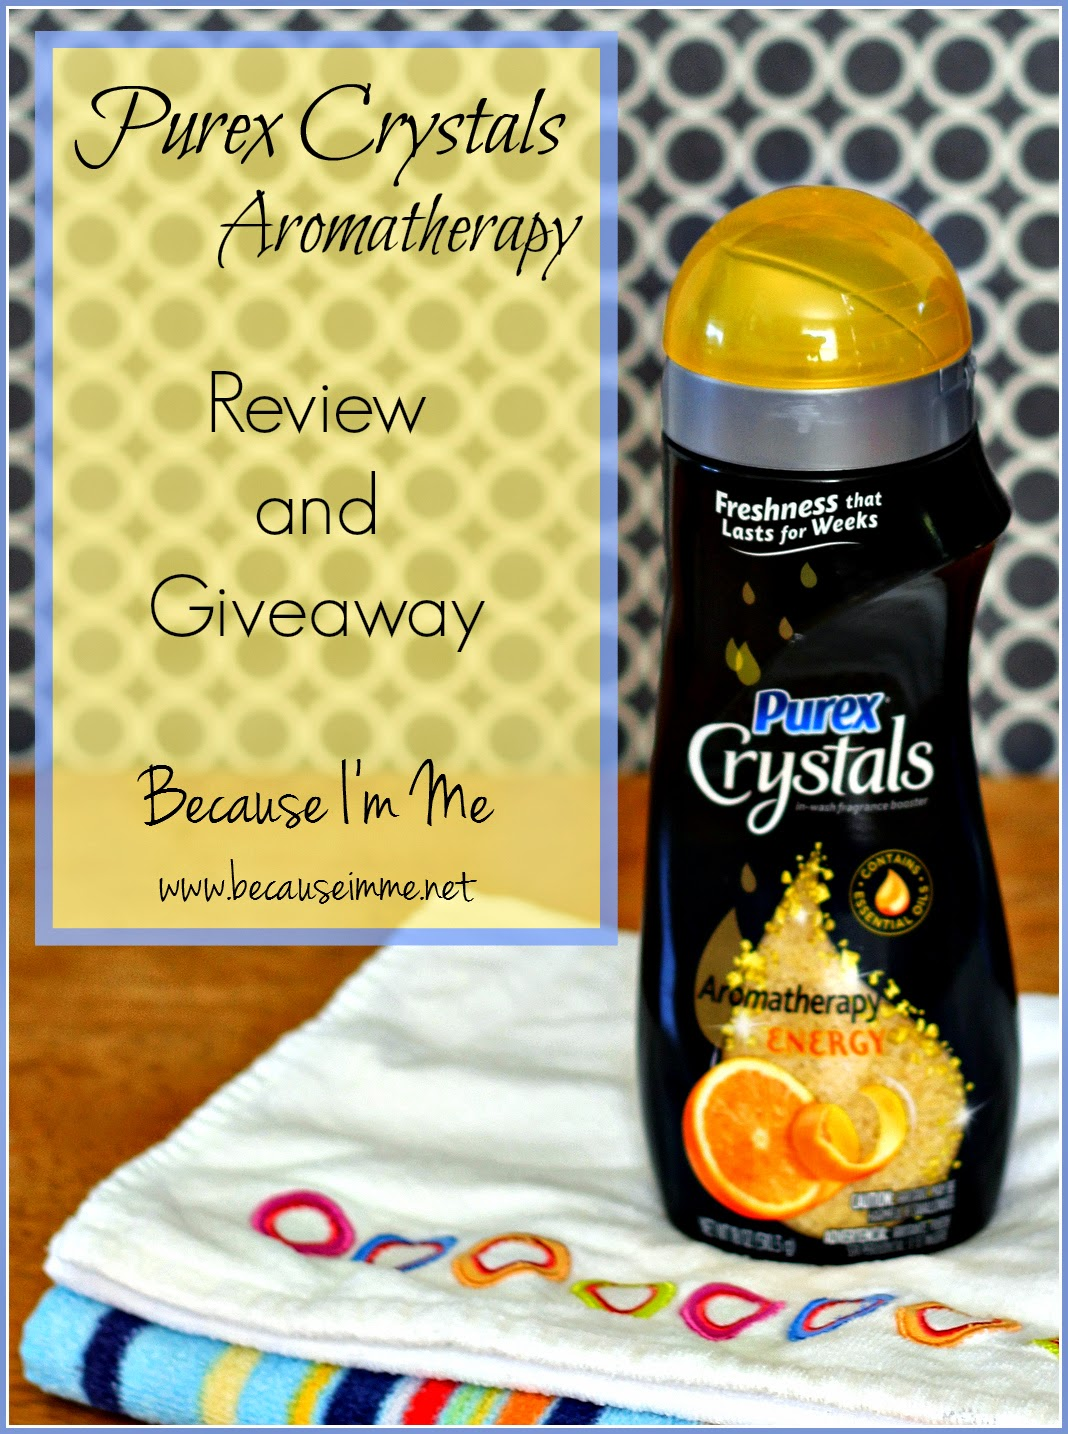 Because I'm Me Purex Crystals Review and Giveaway